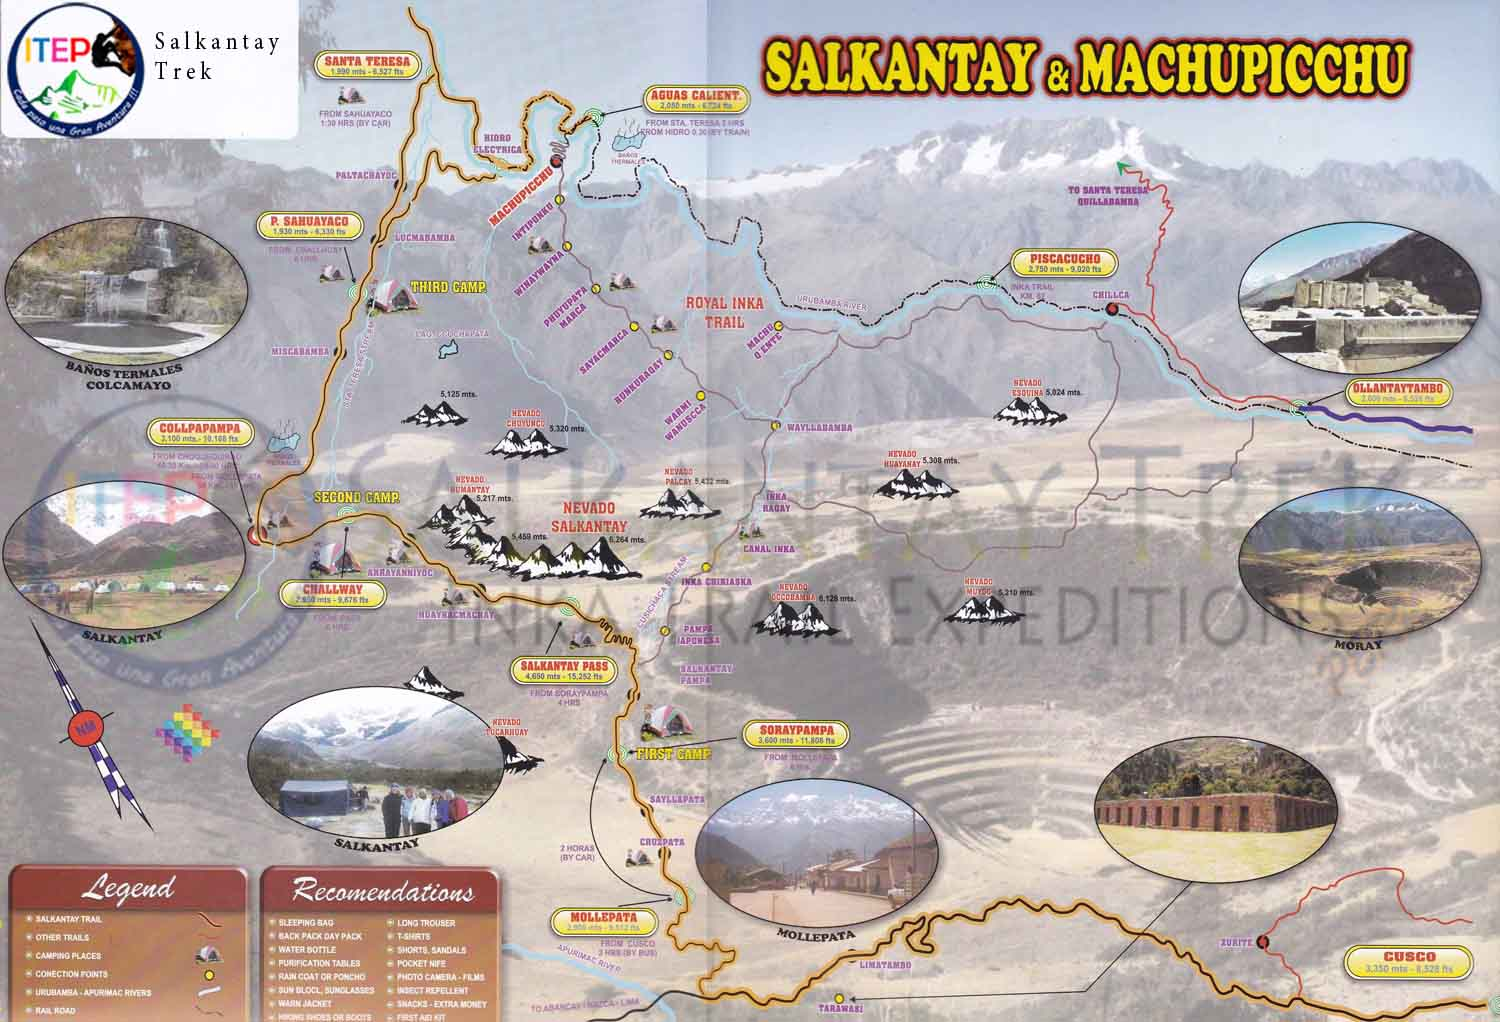 Salkantay Trek map to Machu Picchu